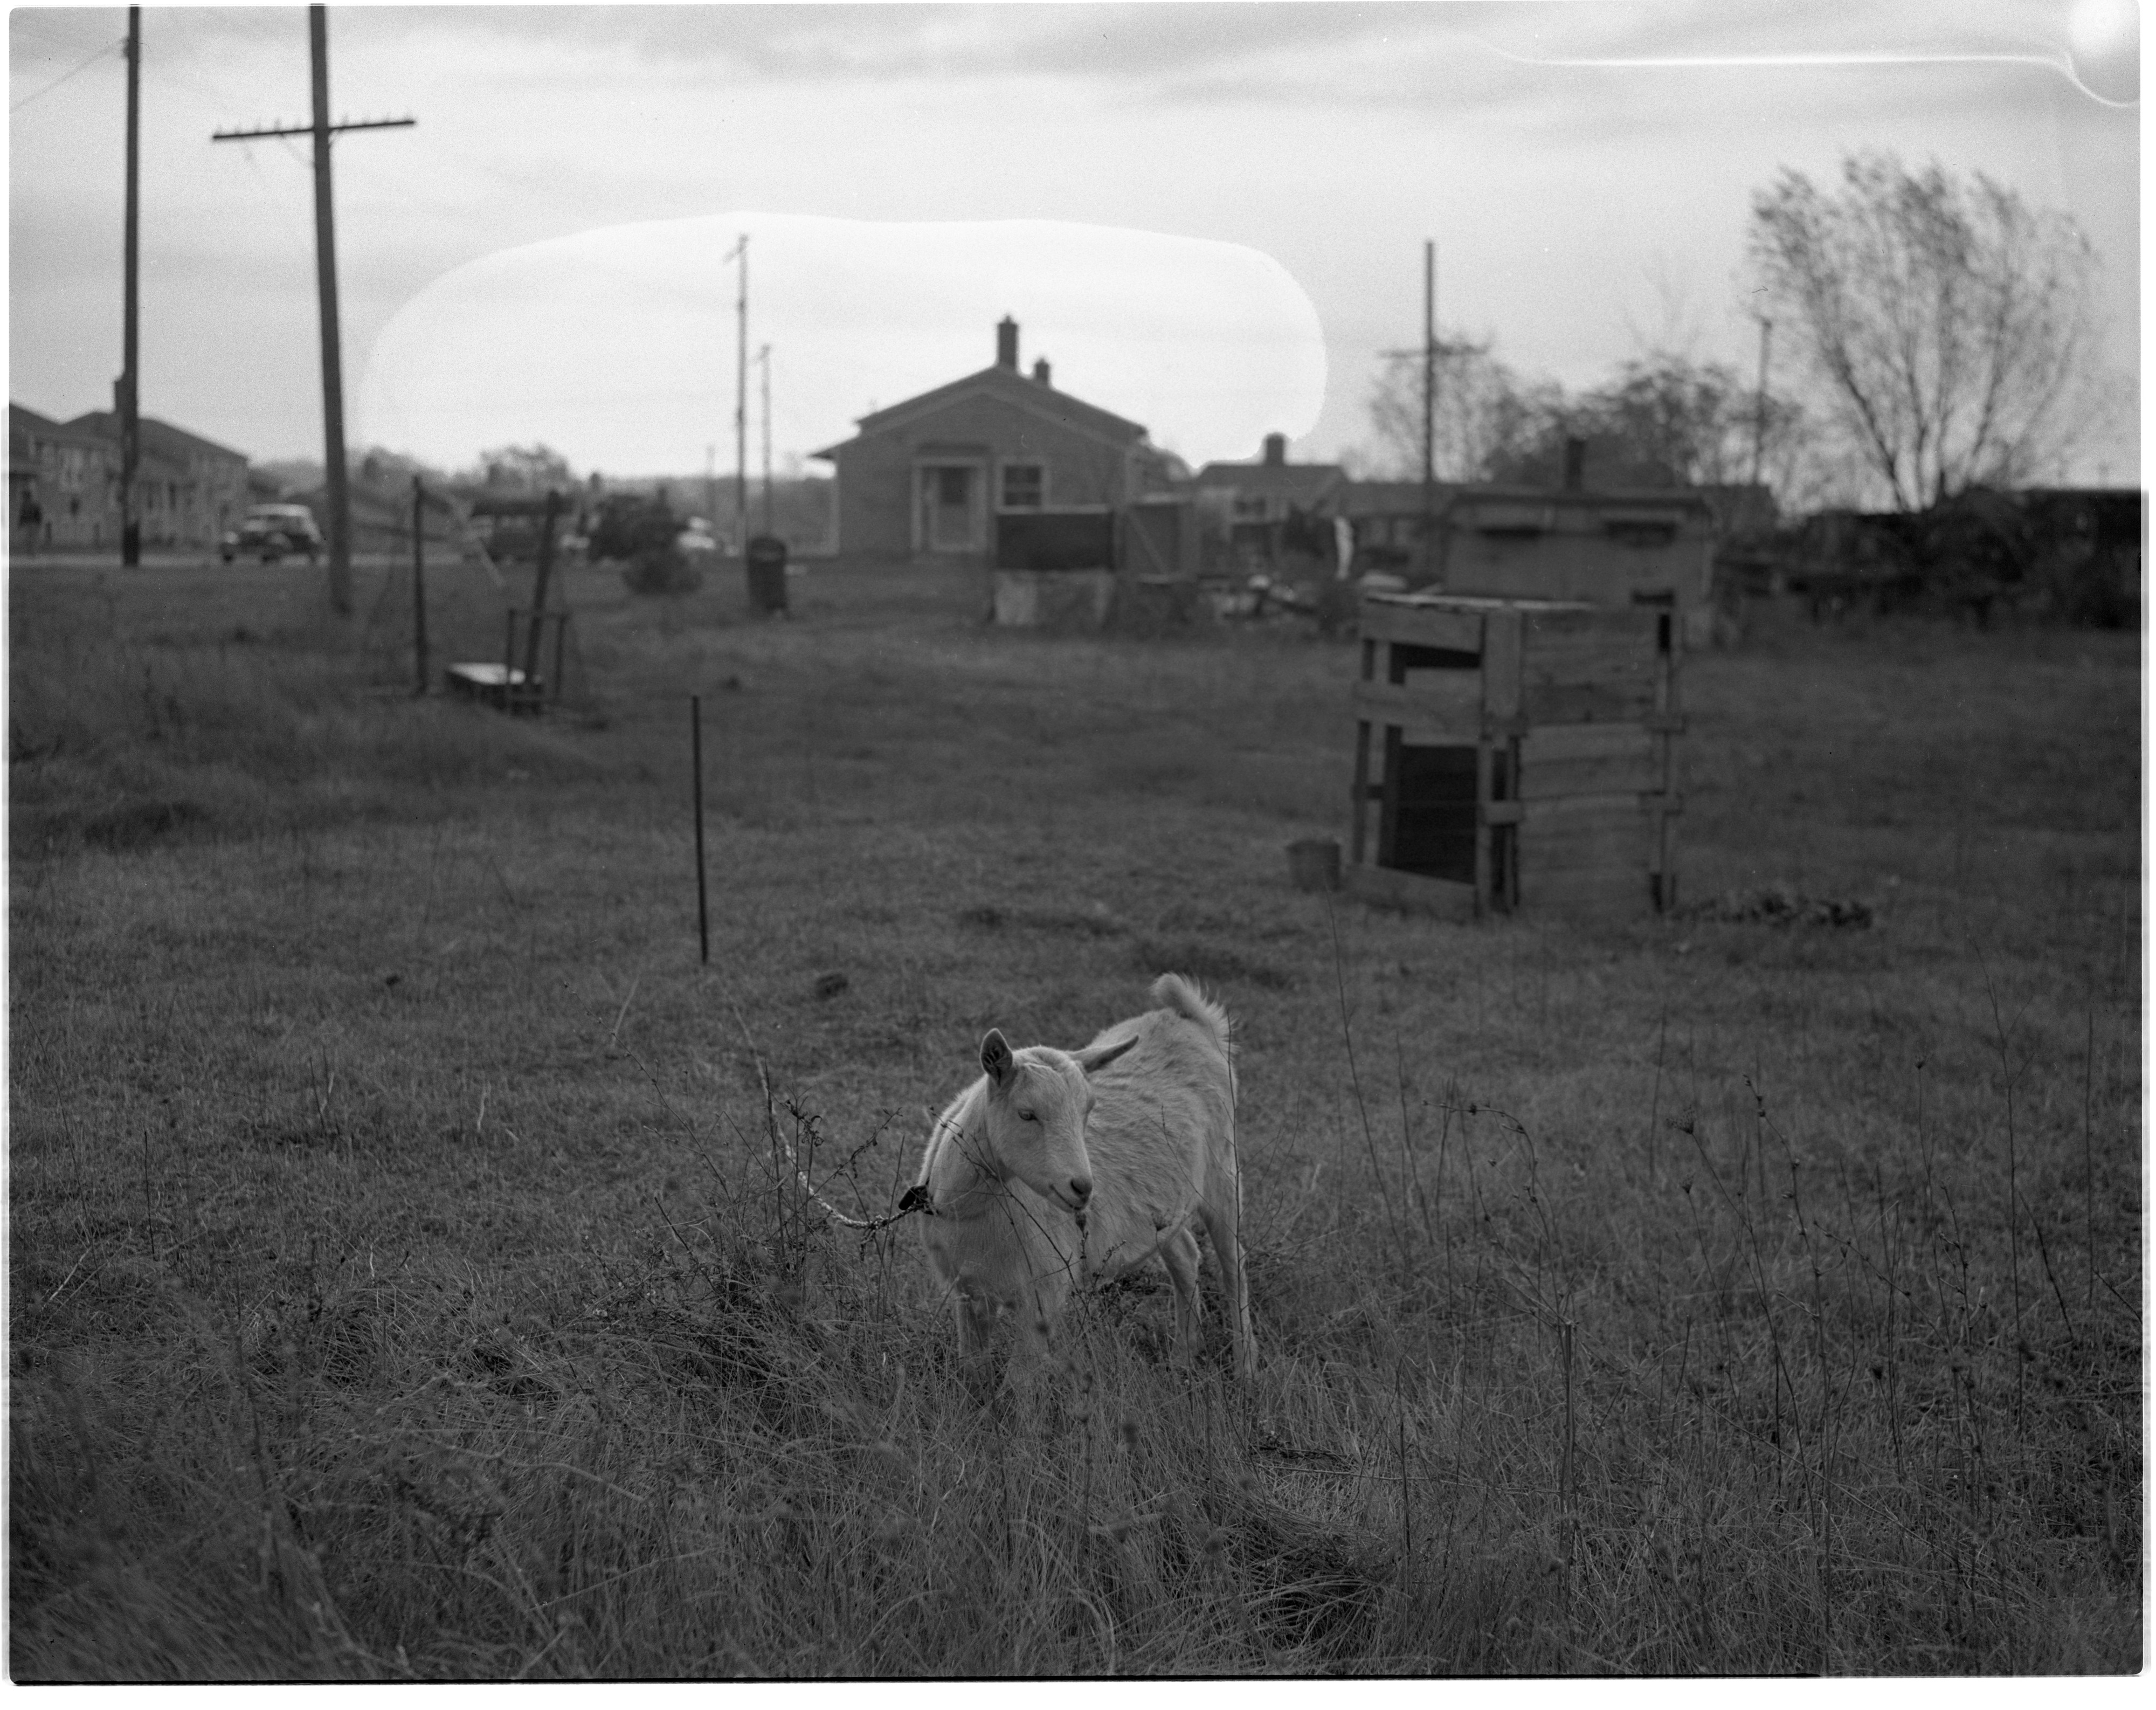 Goat from Condemned Property in Pittsfield Village, November 1944 image